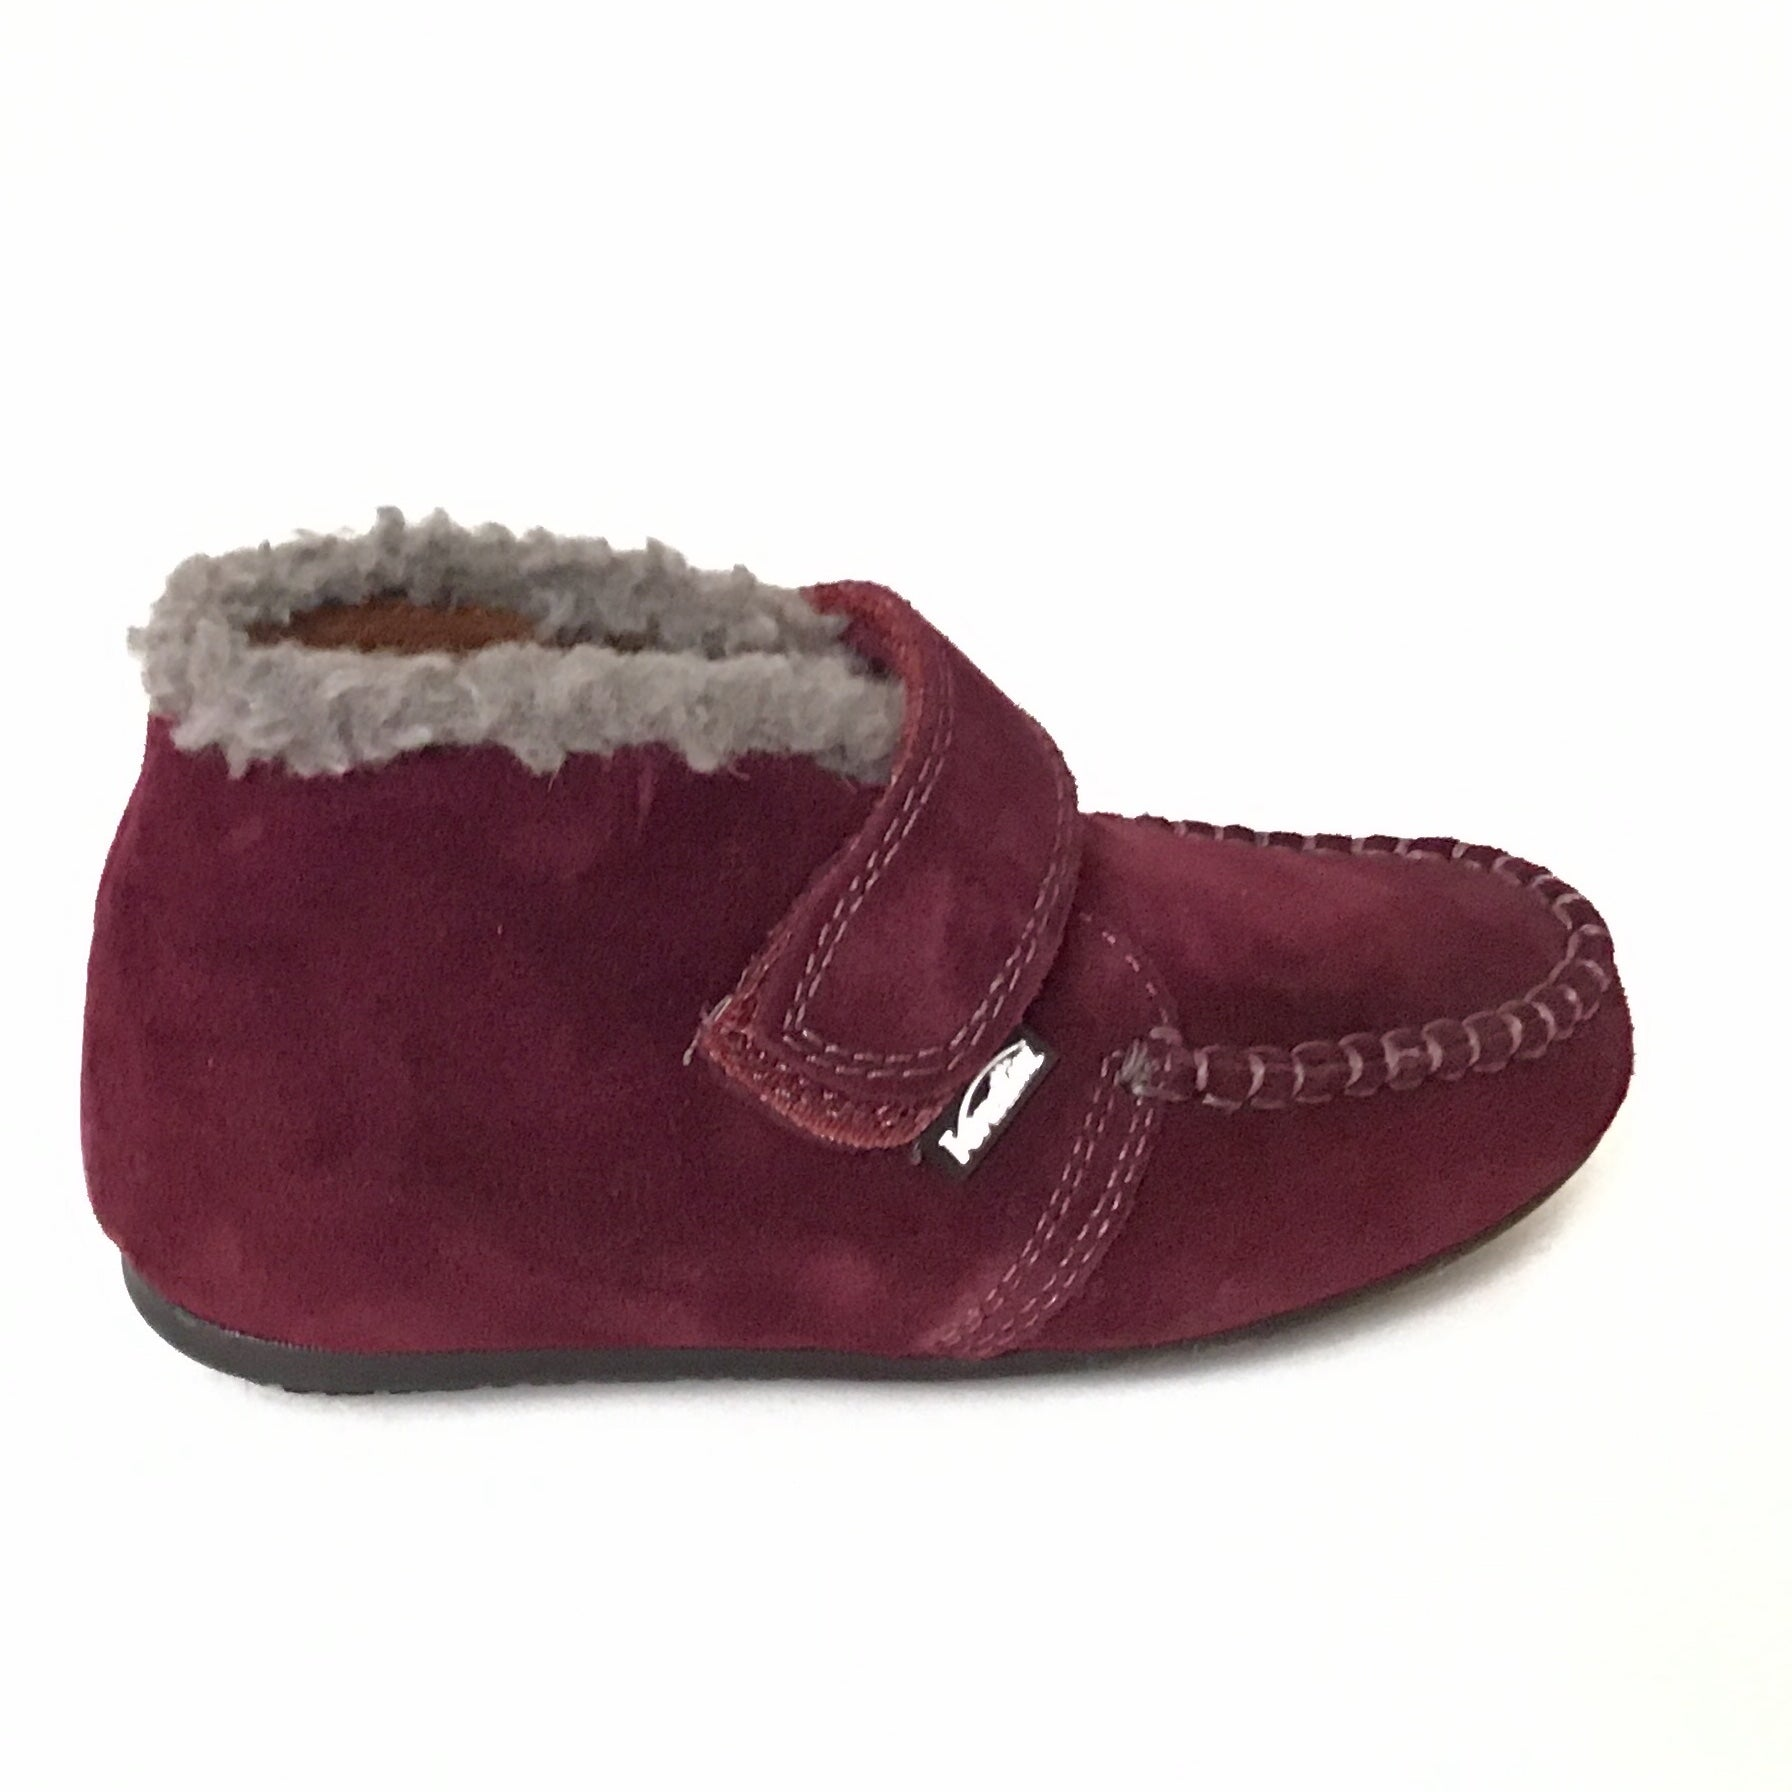 Venettini Bordeaux Suede Bootie With Gray Wool Trim